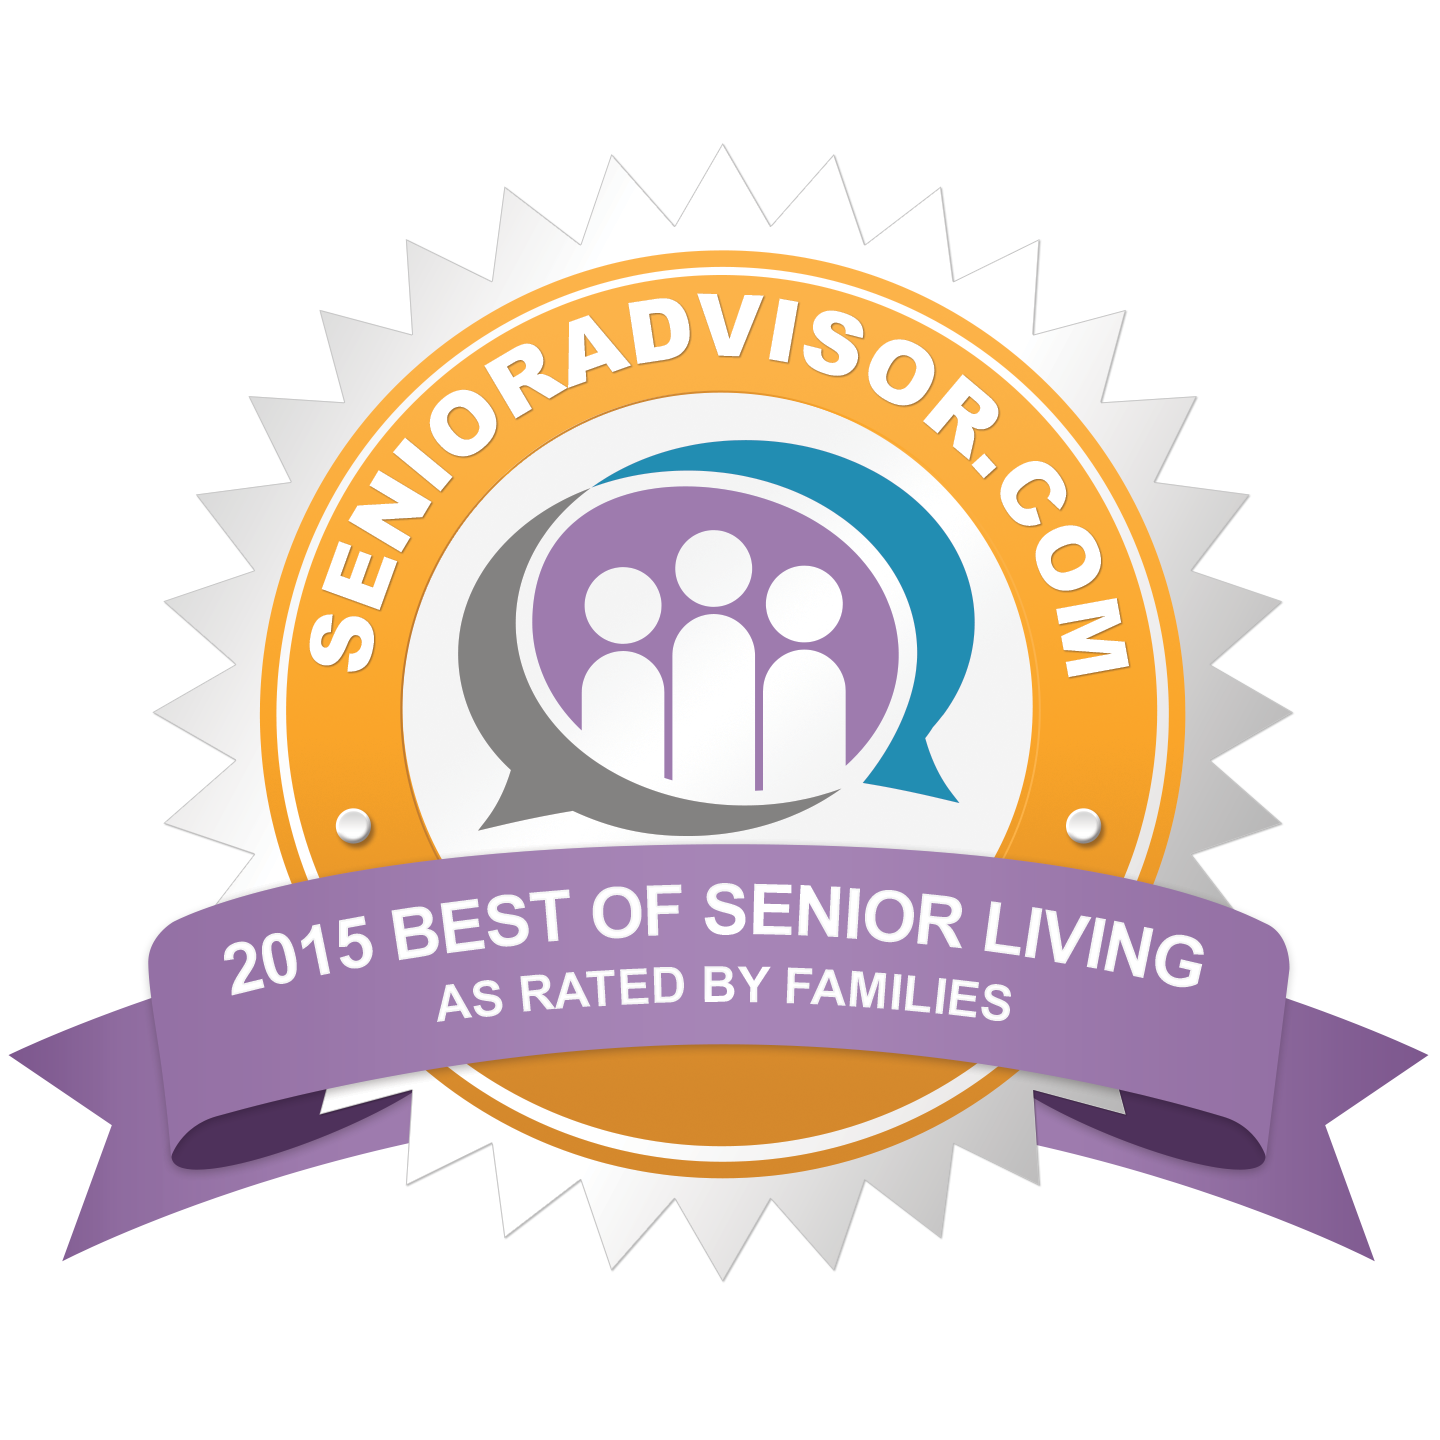 http://senioradvisor-production.s3.amazonaws.com/award_winners/2015-senior-living-award.png